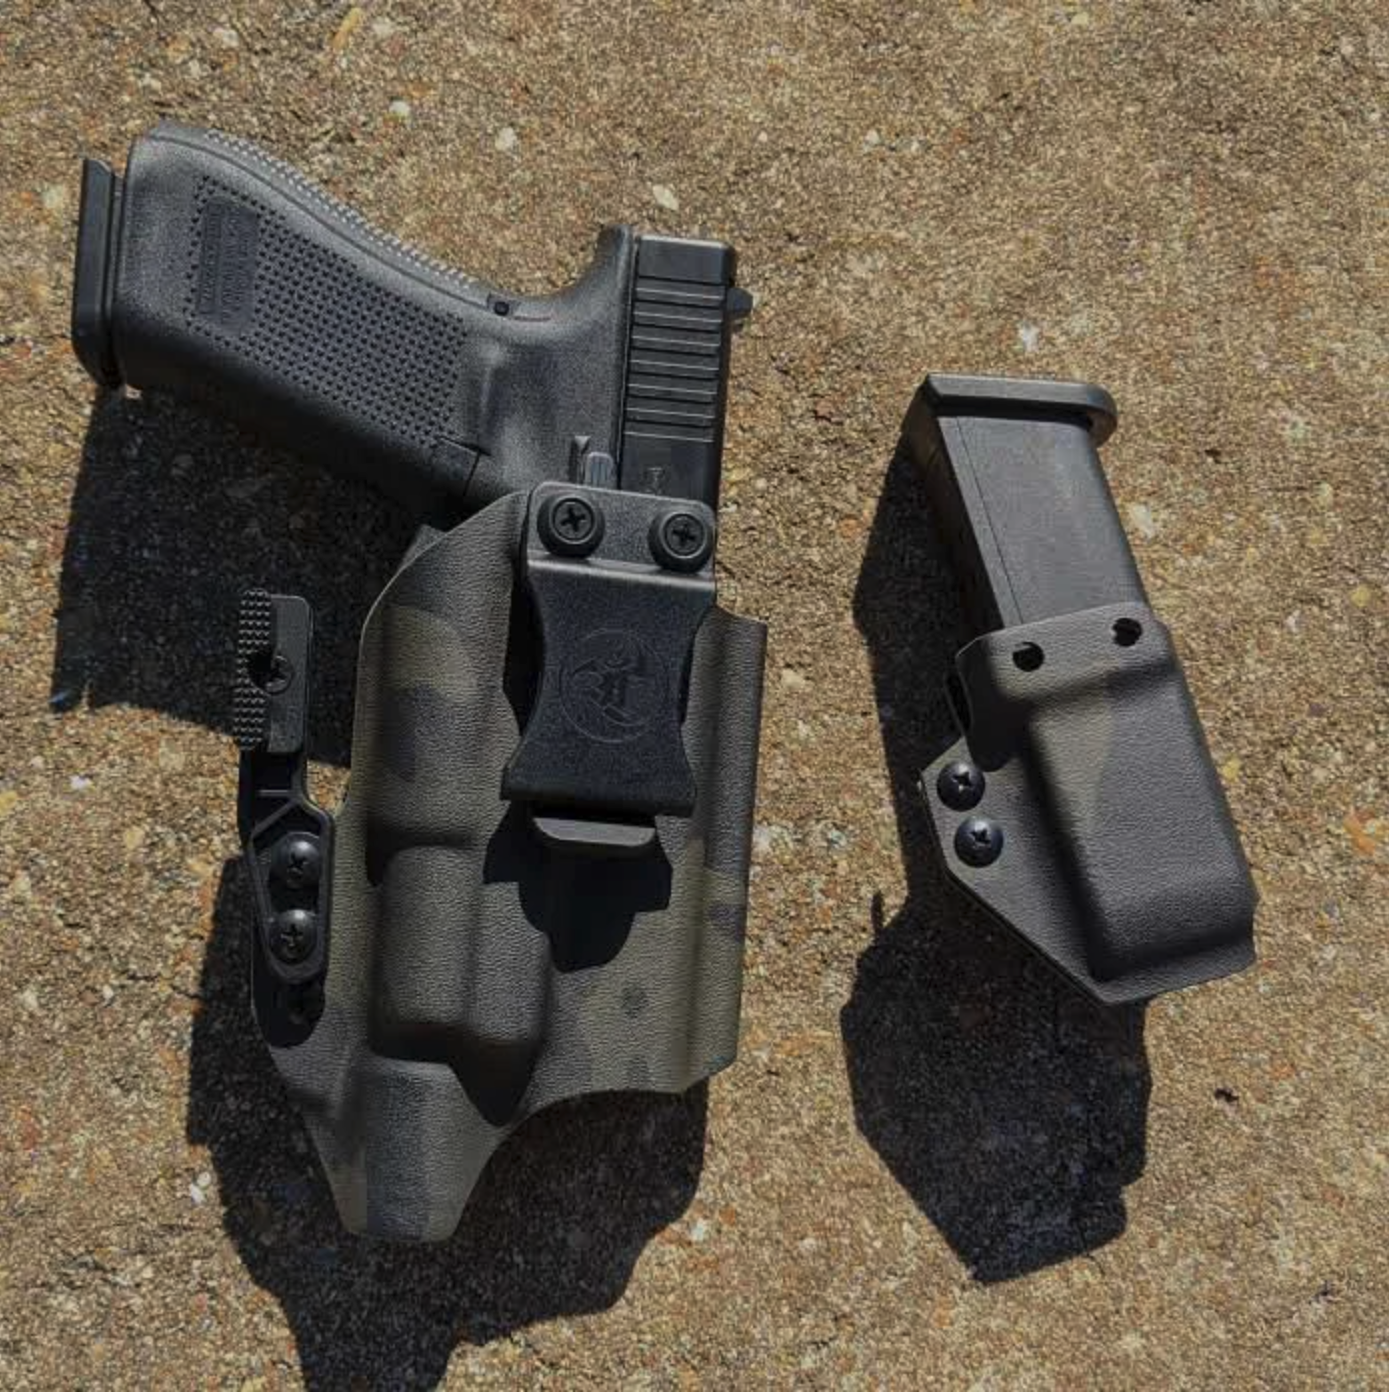 ANR IWB glock holster with mag carrier